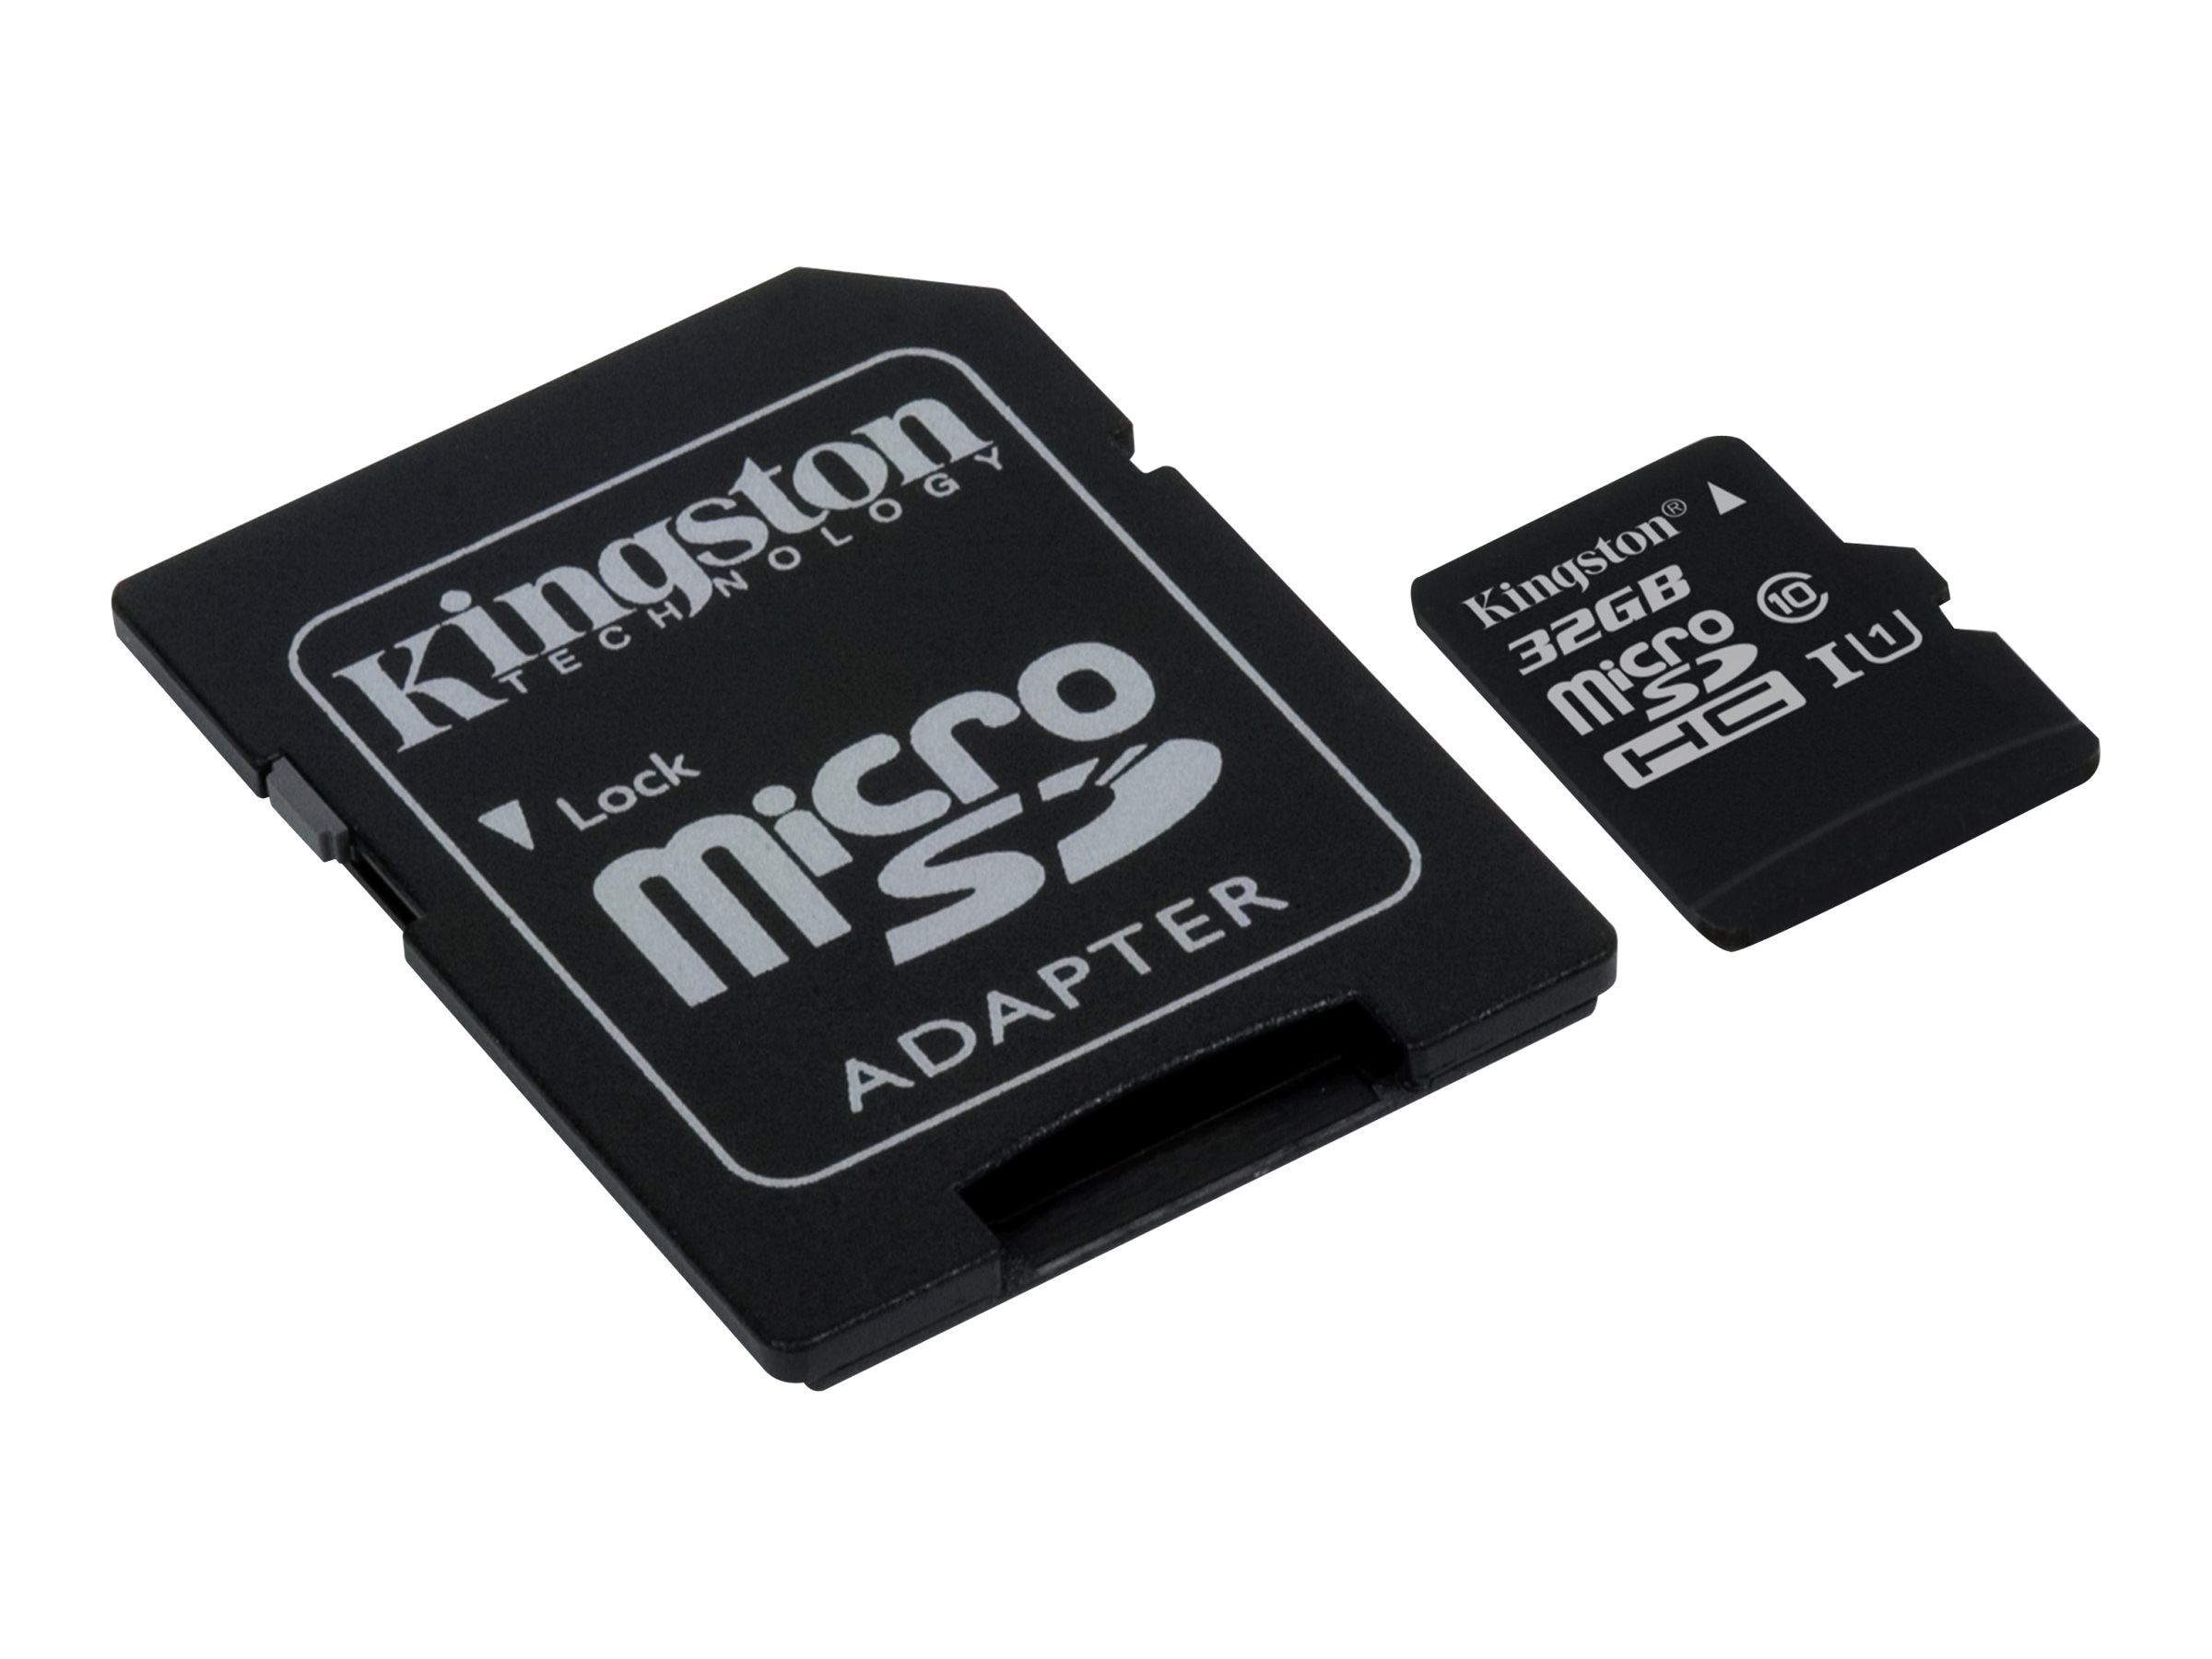 Kingston 32GB UHS-I microSDHC Flash Memory Card with SD Adapter, Class 10